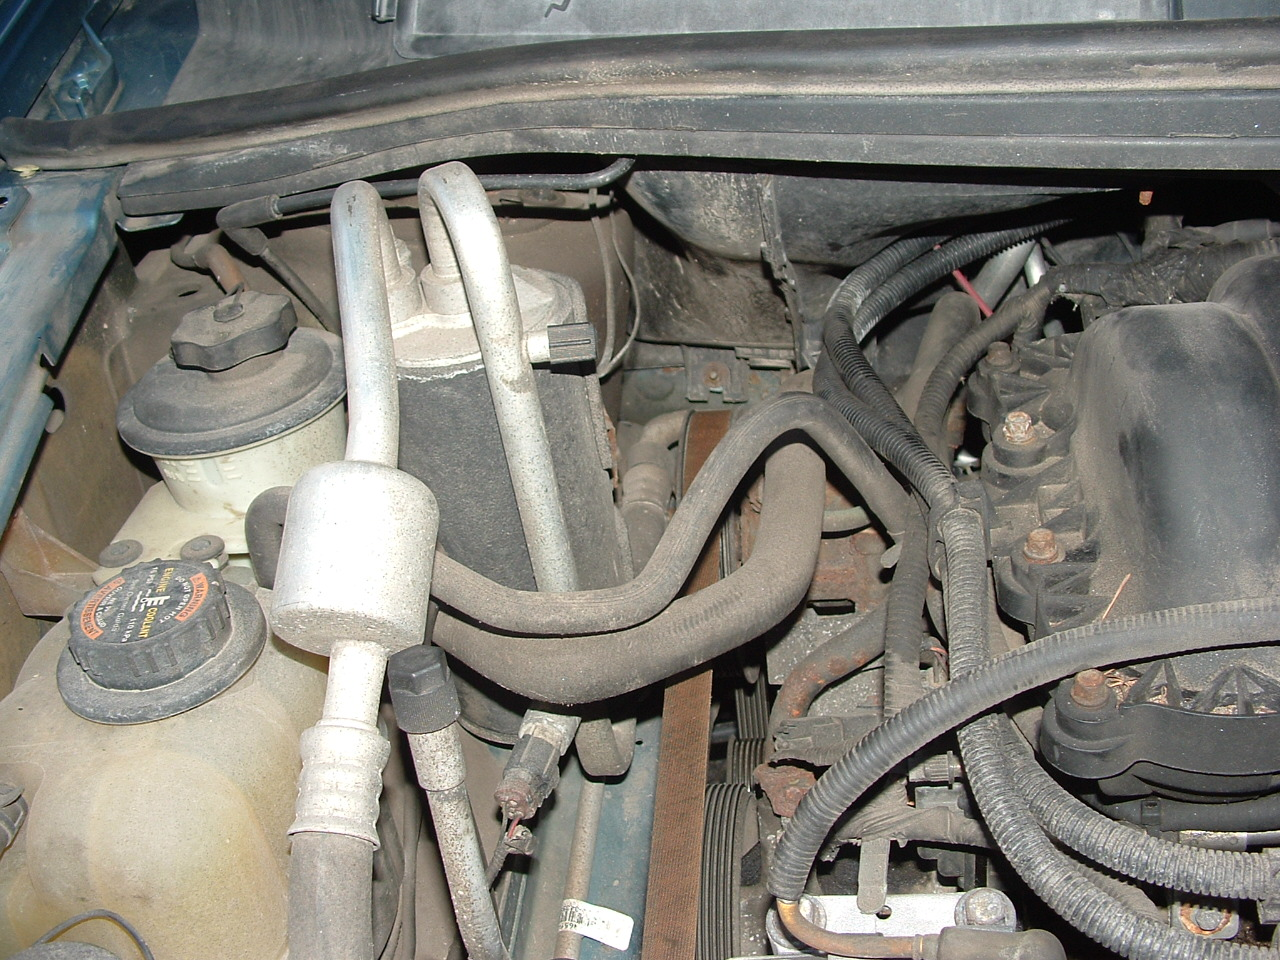 2001 ford escape exhaust diagram lock up 700r4 manual 2003 windstar system get free